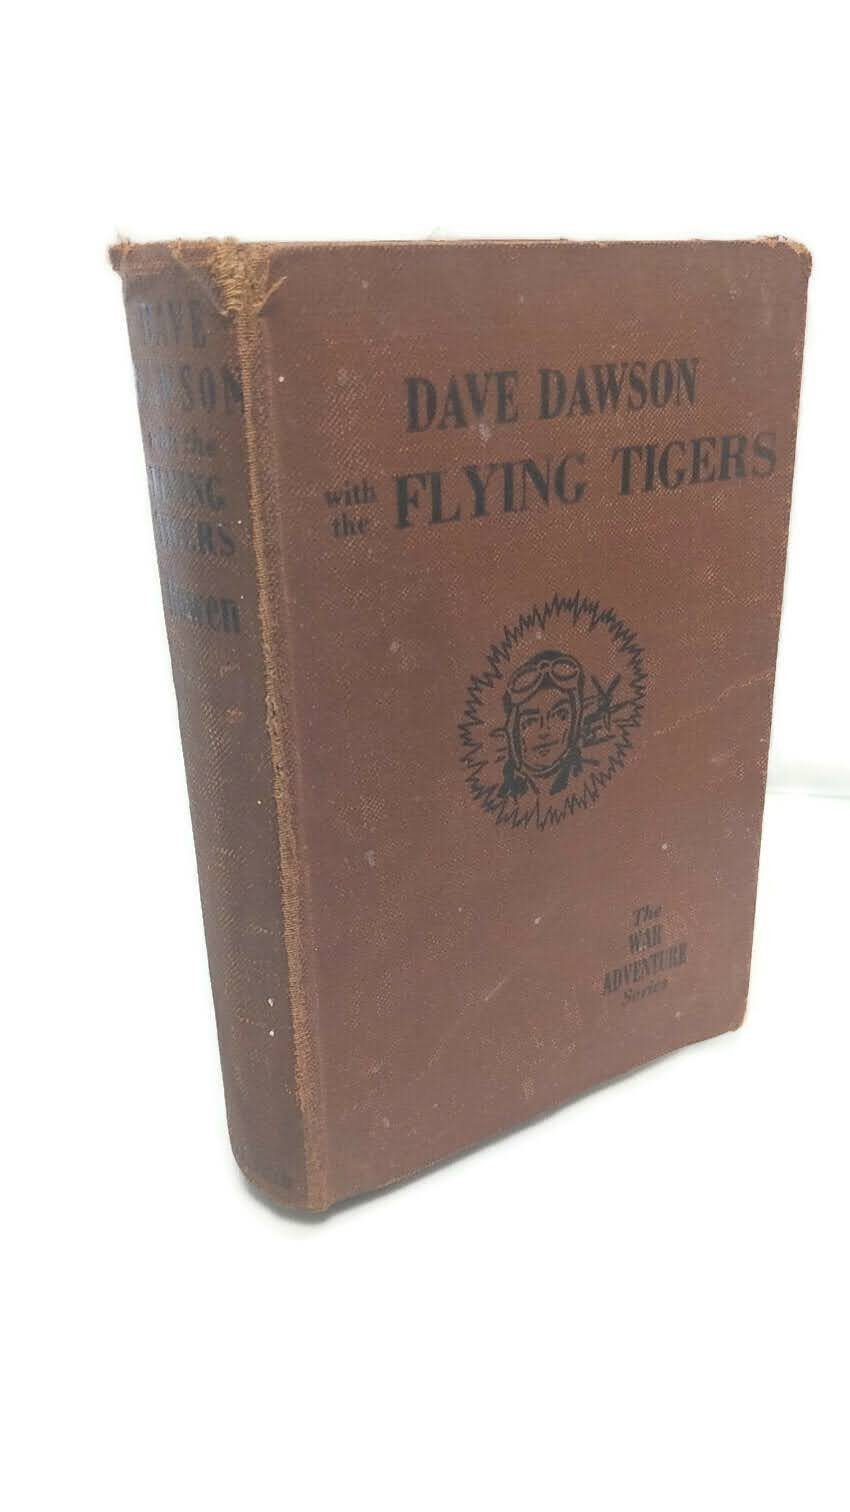 1943 Dave Dawson with The Flying Tigers Hardback Book